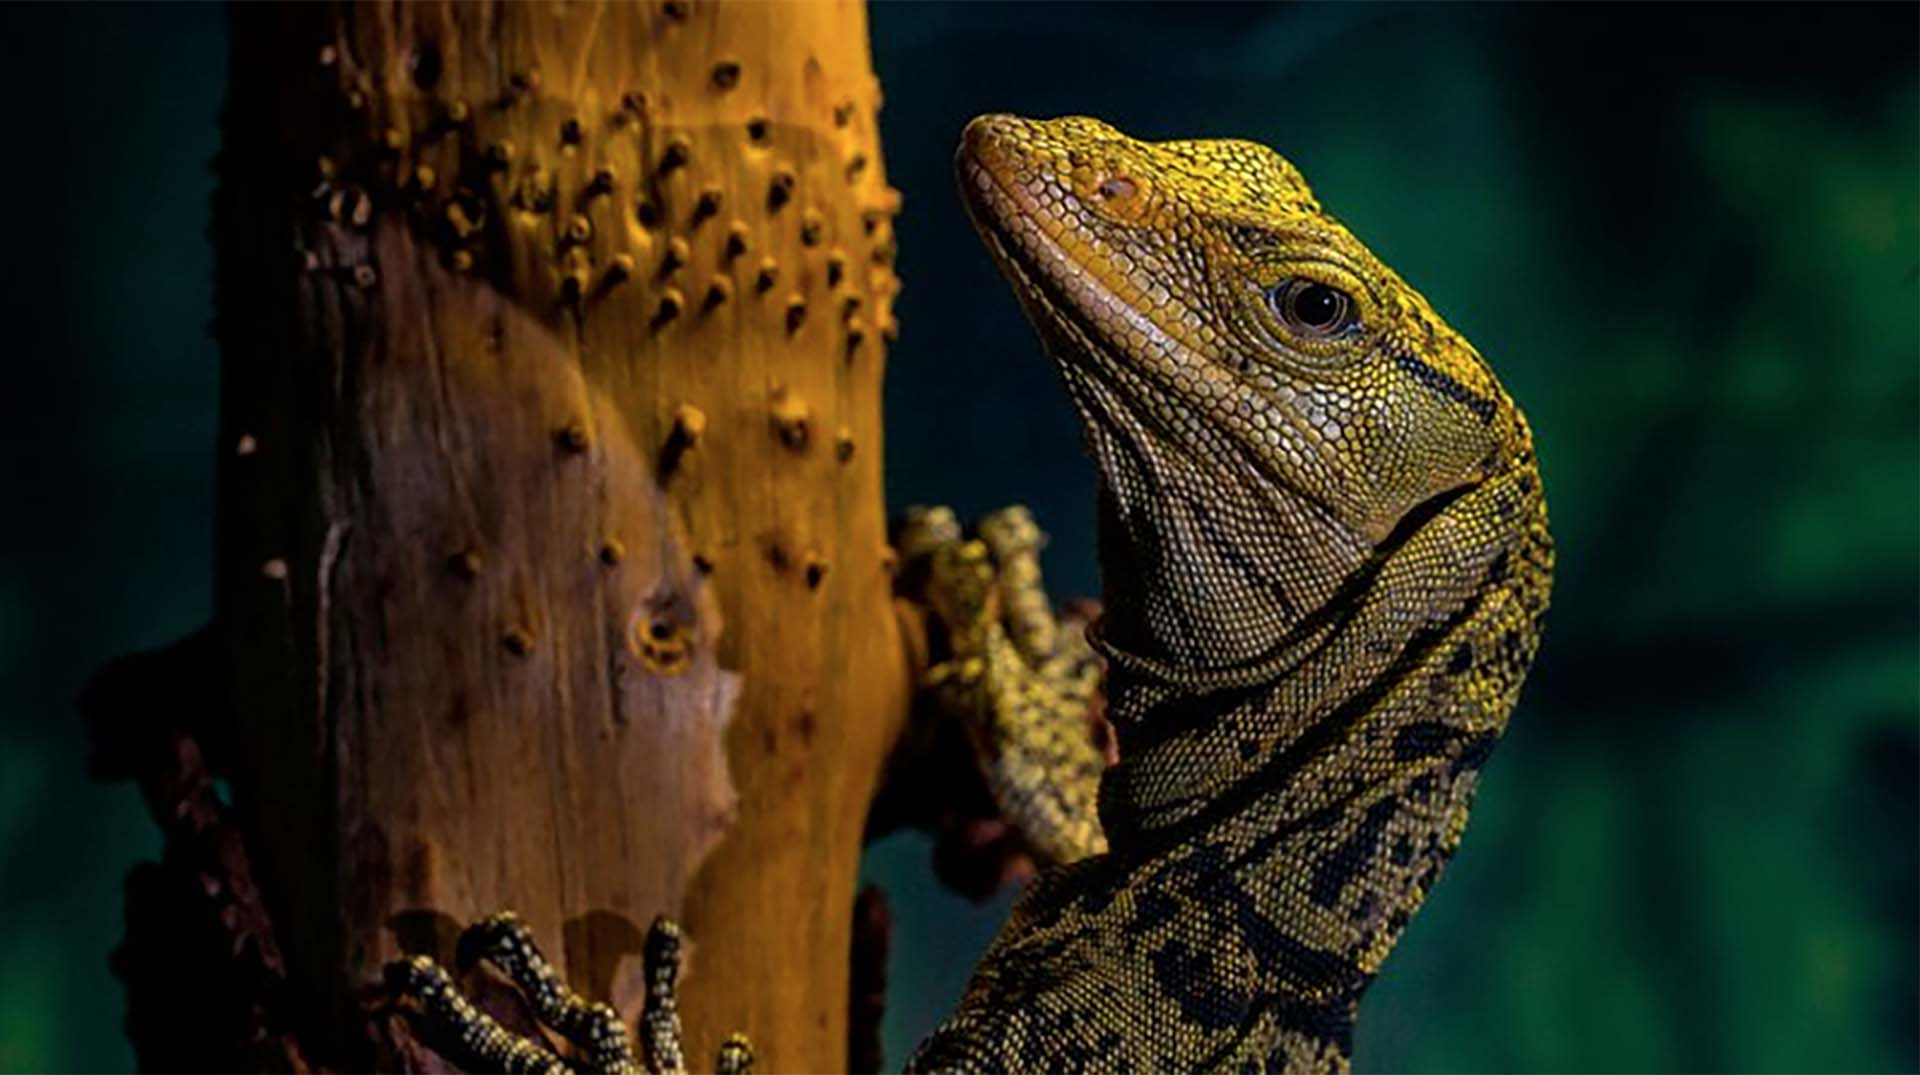 The face of a year-old Gray's monitor lizard climbing on a branch.